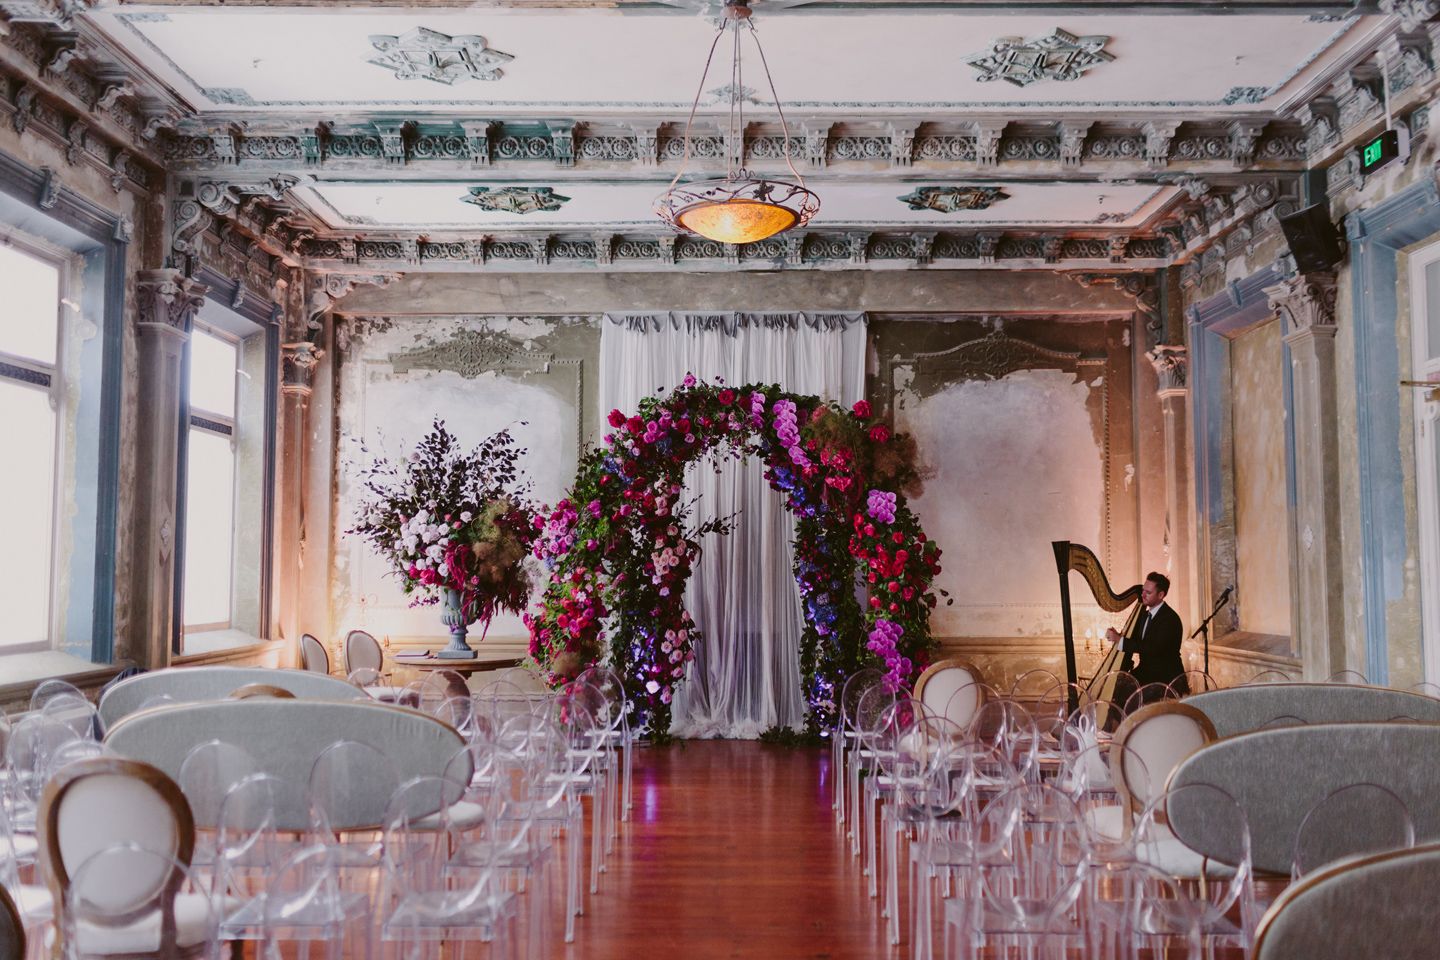 WEDDING CEREMONIES - Tie the knot in The George Ballroom, one of the most beautiful venues in Melbourne.